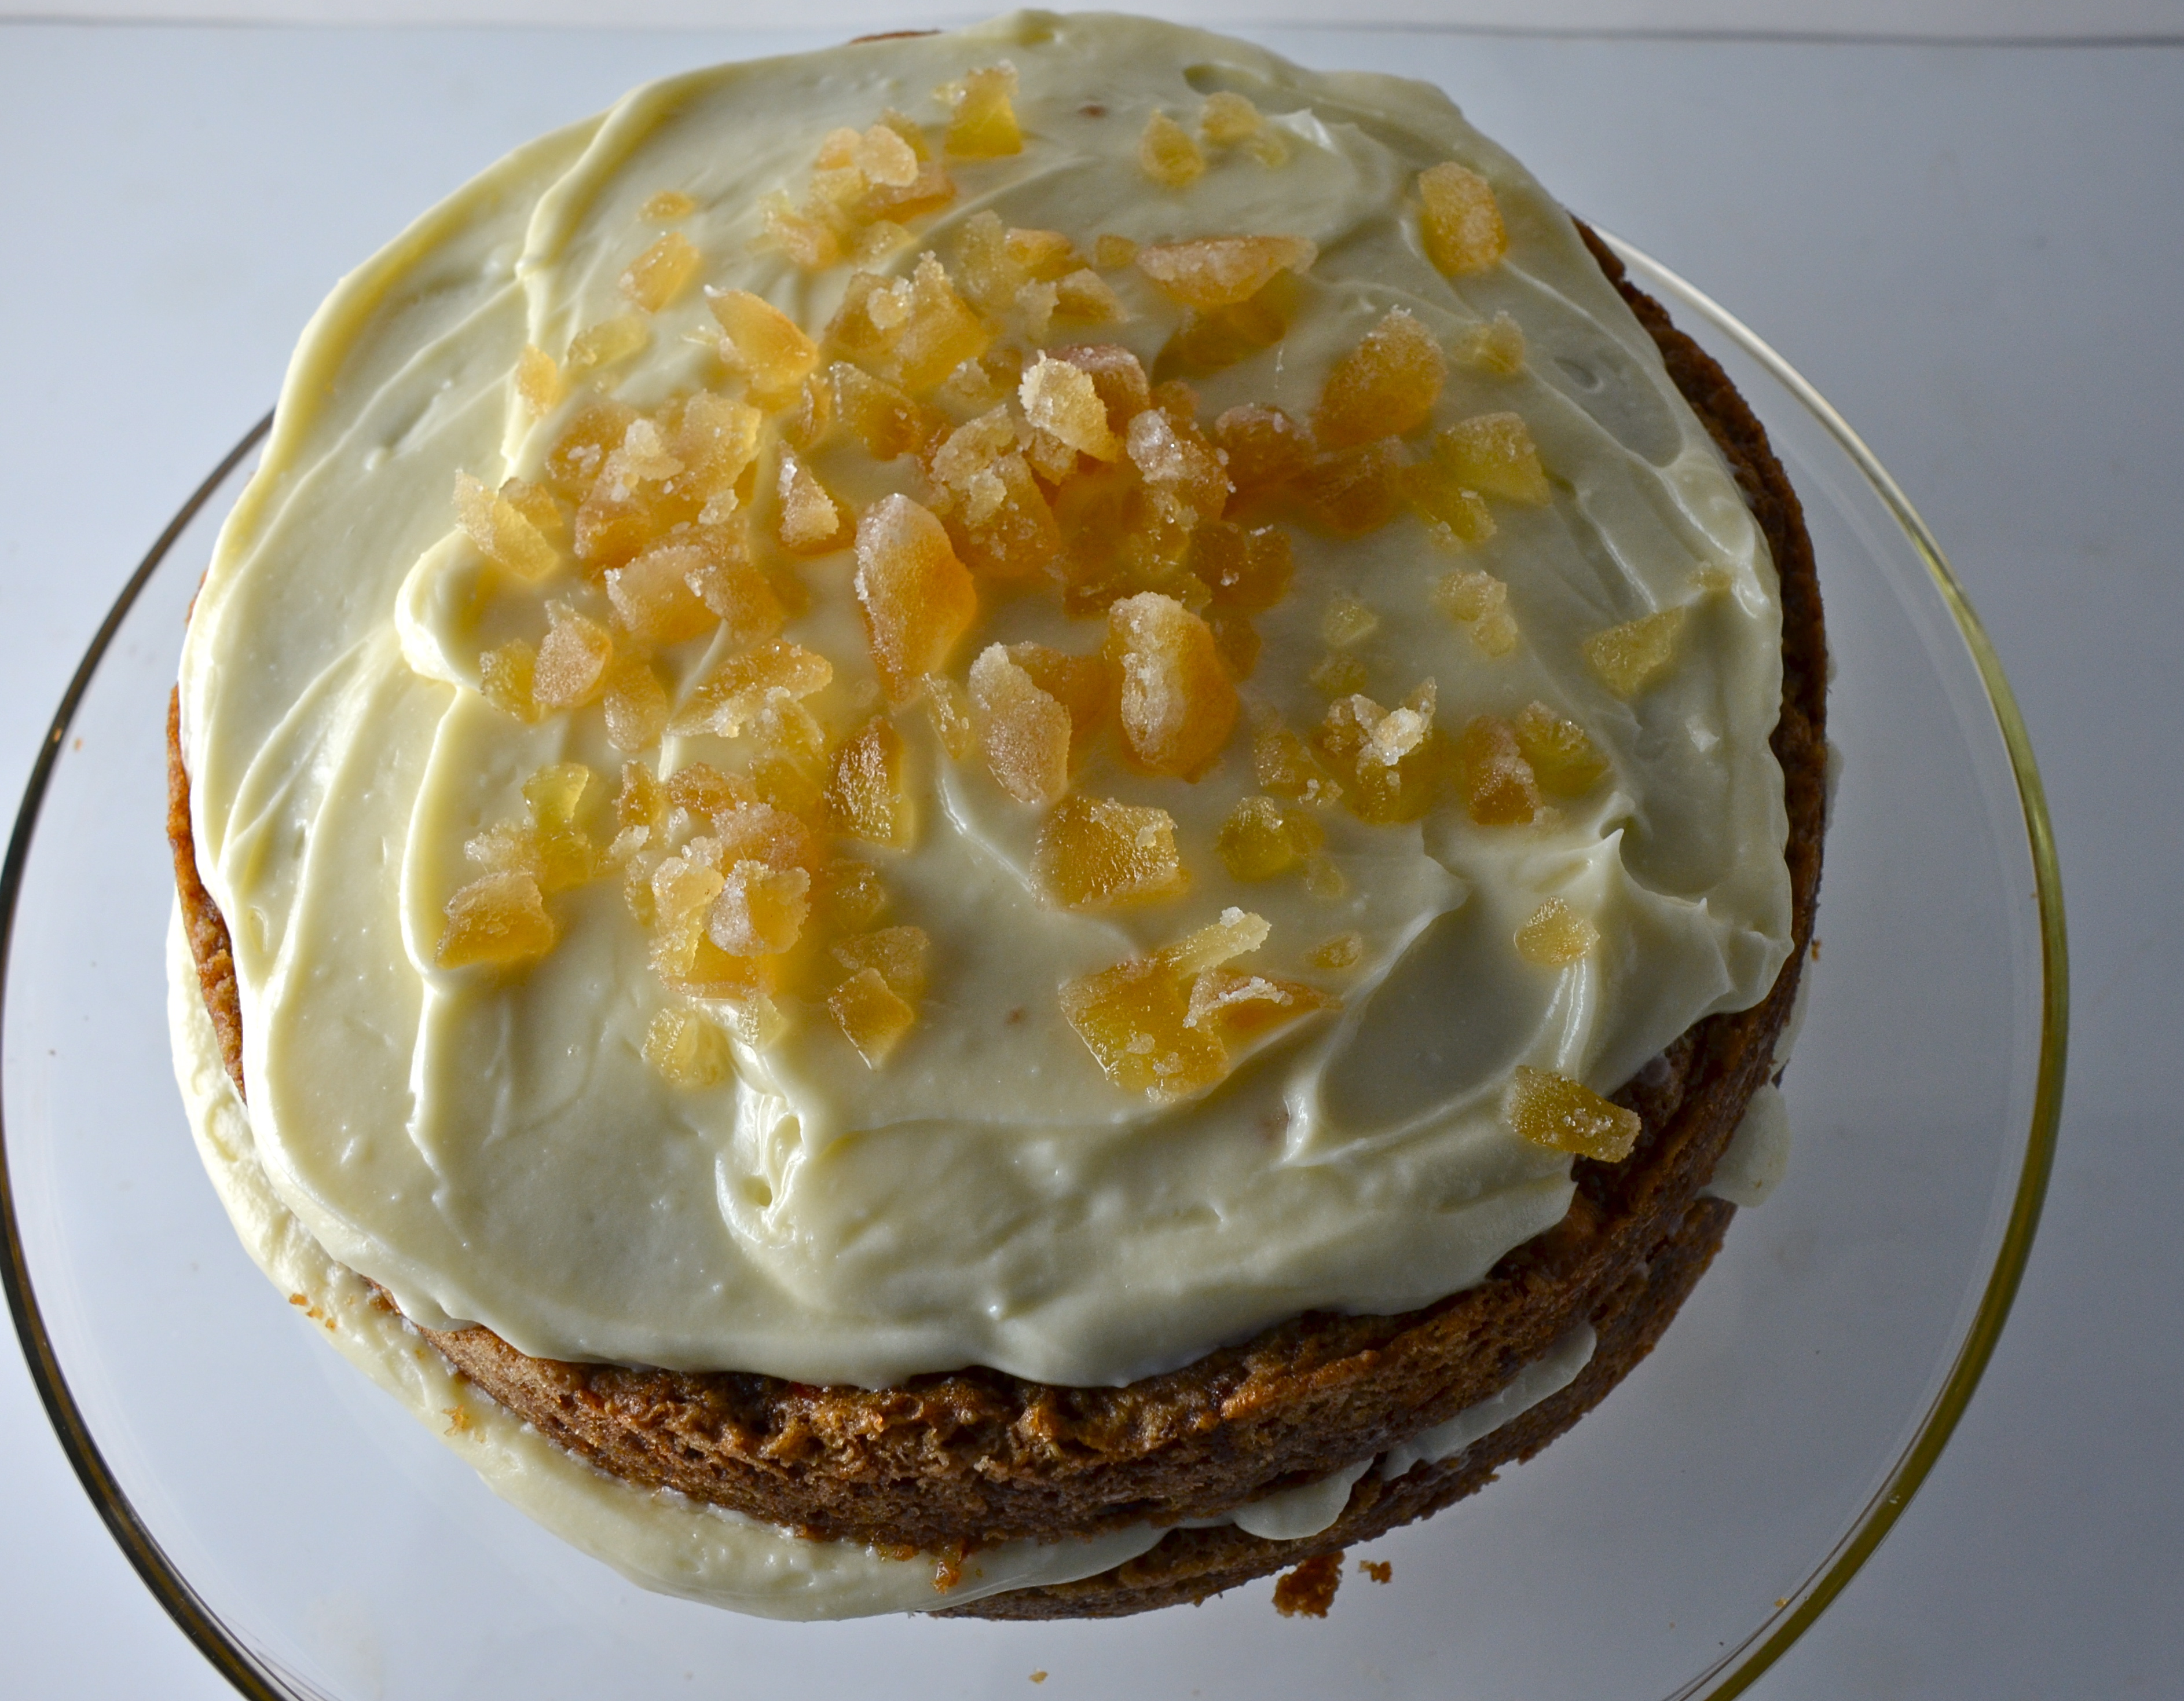 Barefoot Contessa Carrot Cake With Cream Cheese Icing